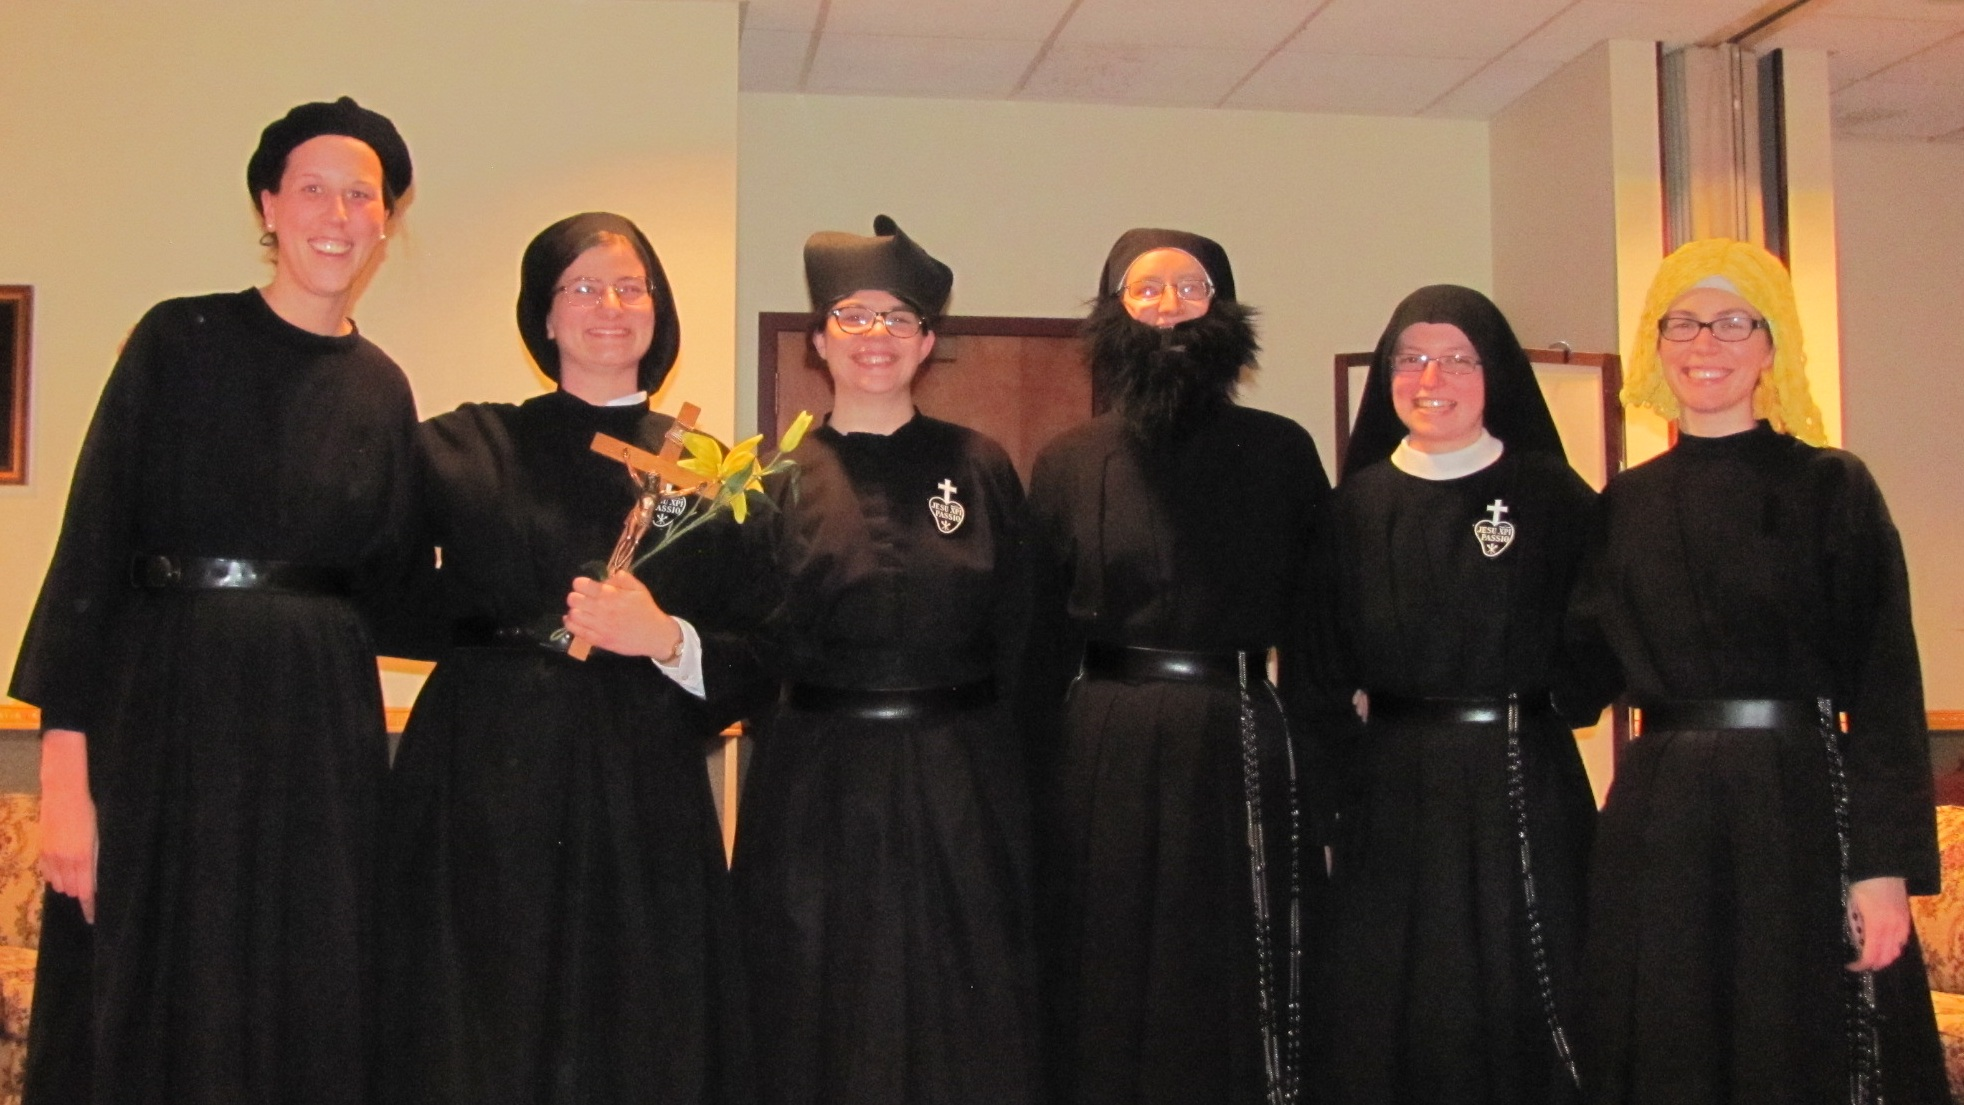 Starring… - Isabel, Theresa, Kathryn, Sr. Cecilia Maria, Sr. Frances Marie, and Sr. Maria Faustina